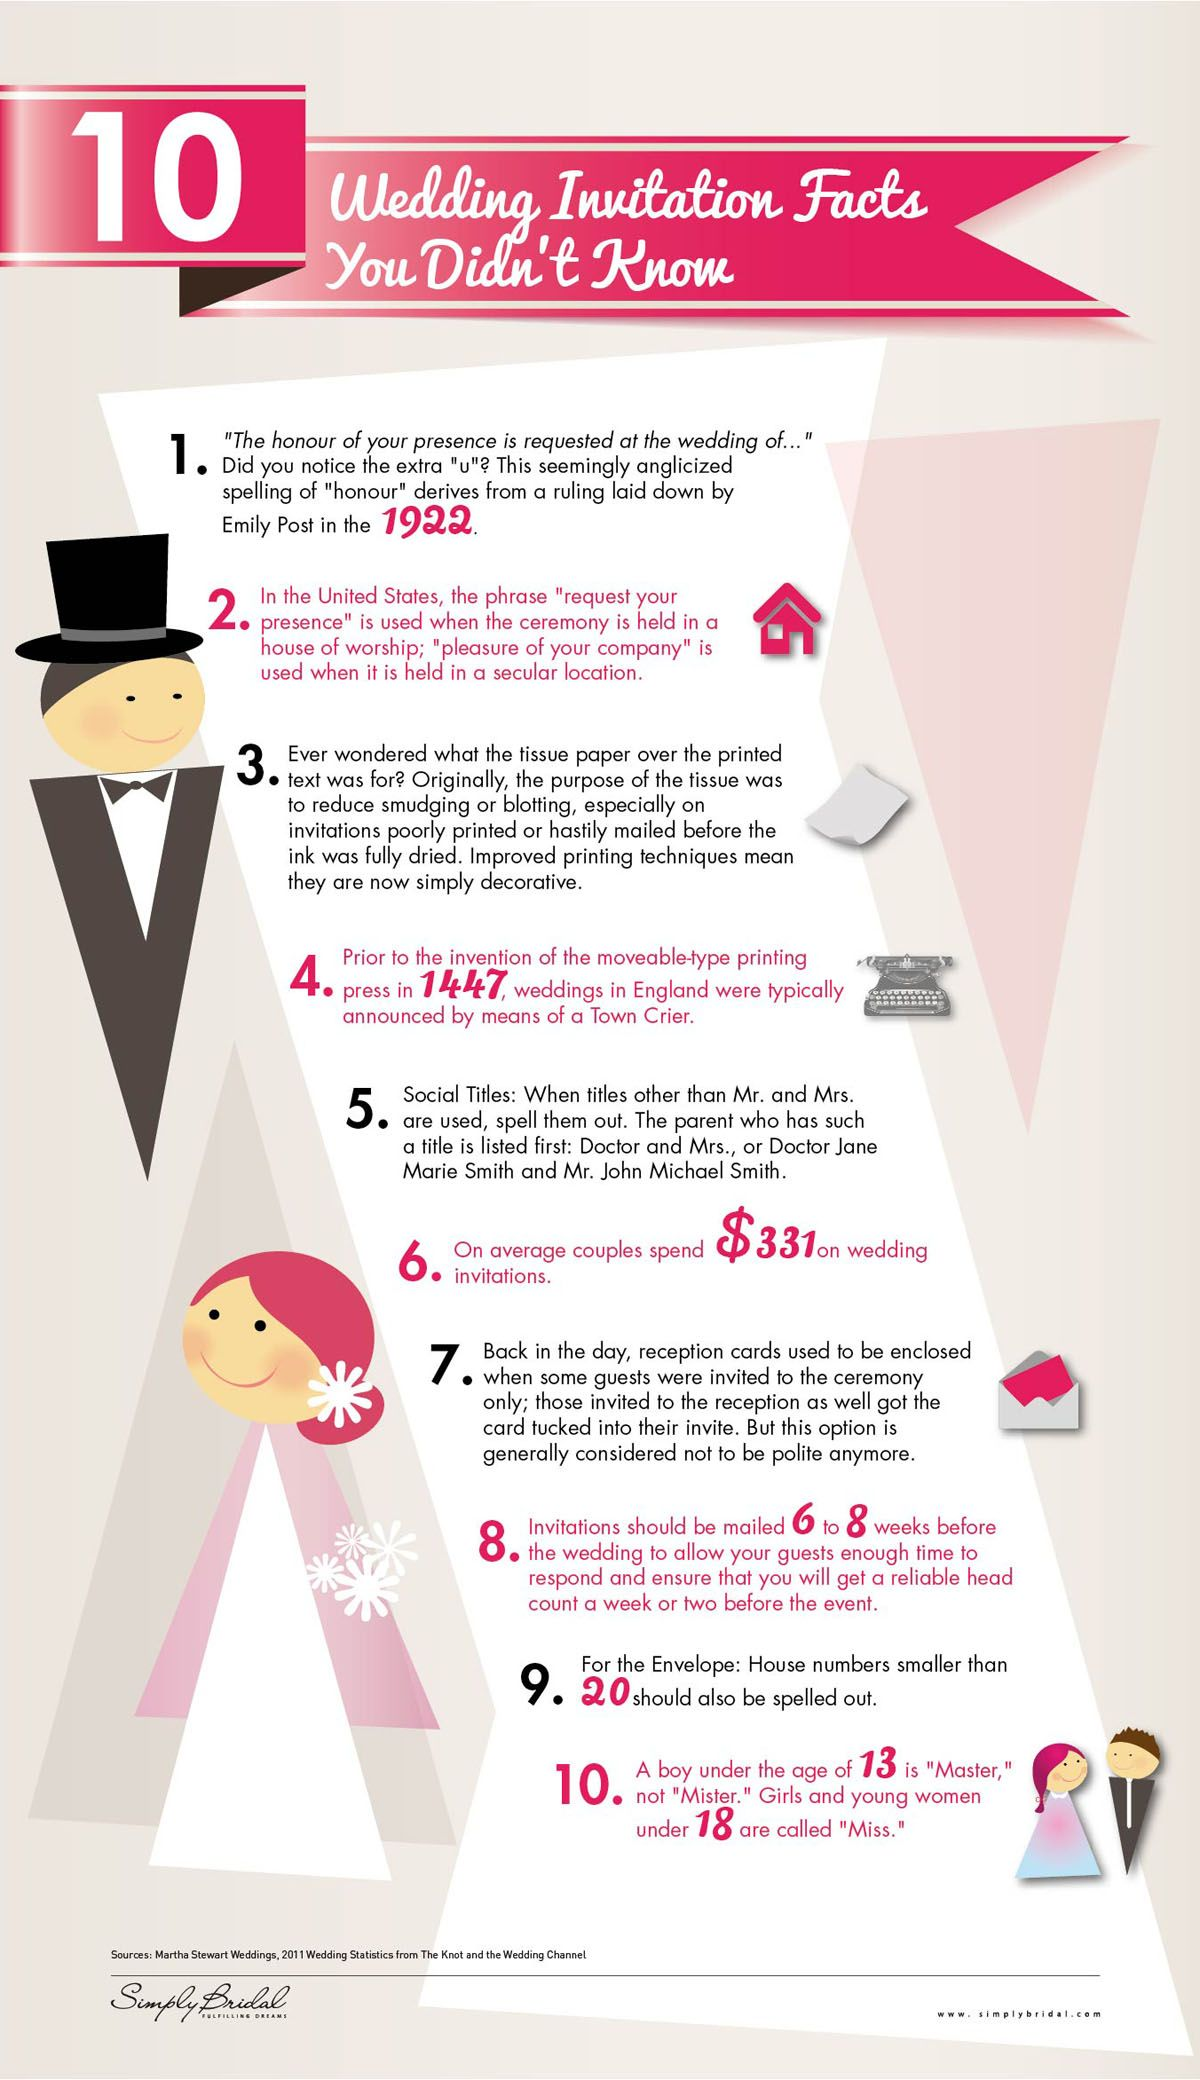 Ten wedding invitation facts you didn't know. Funny